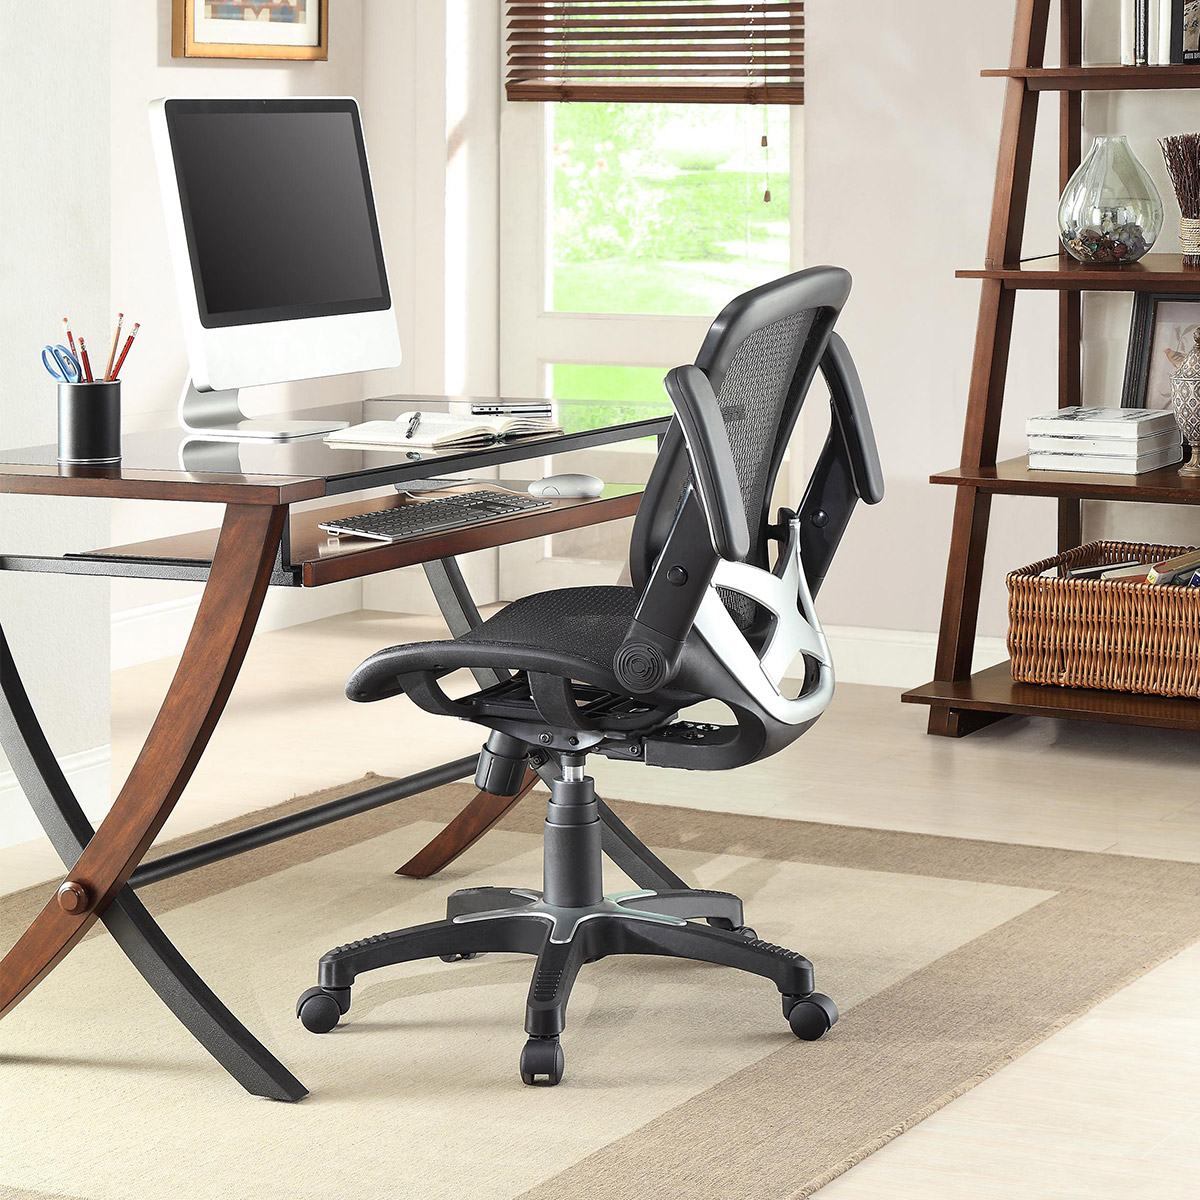 Costco Office Chairs In Store Bayside Furnishings